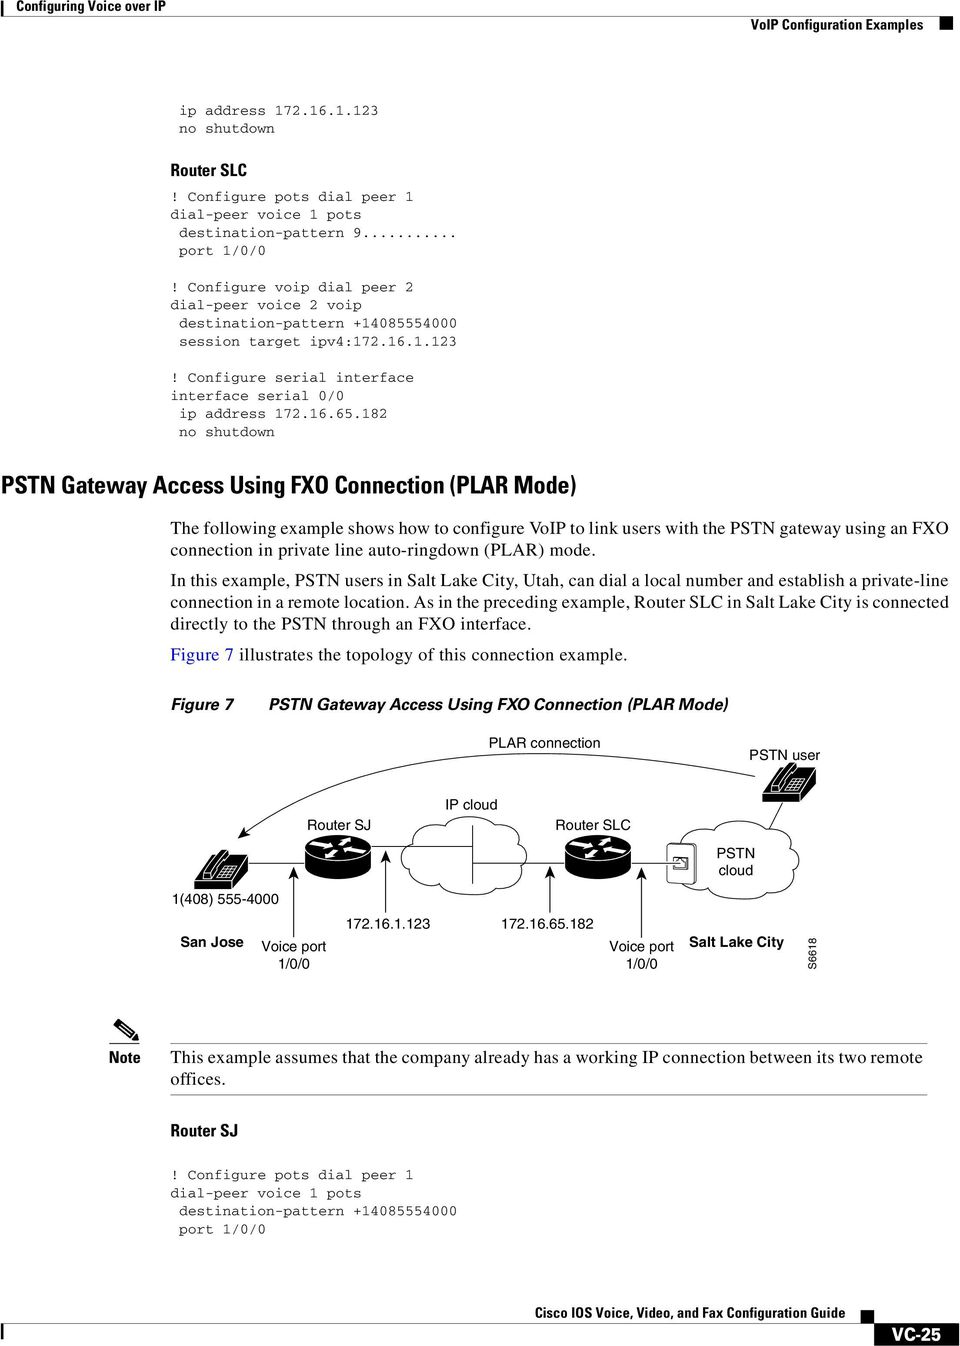 182 no shutdown PSTN Gateway Access Using FXO Connection (PLAR Mode) The following example shows how to configure VoIP to link users with the PSTN gateway using an FXO connection in private line